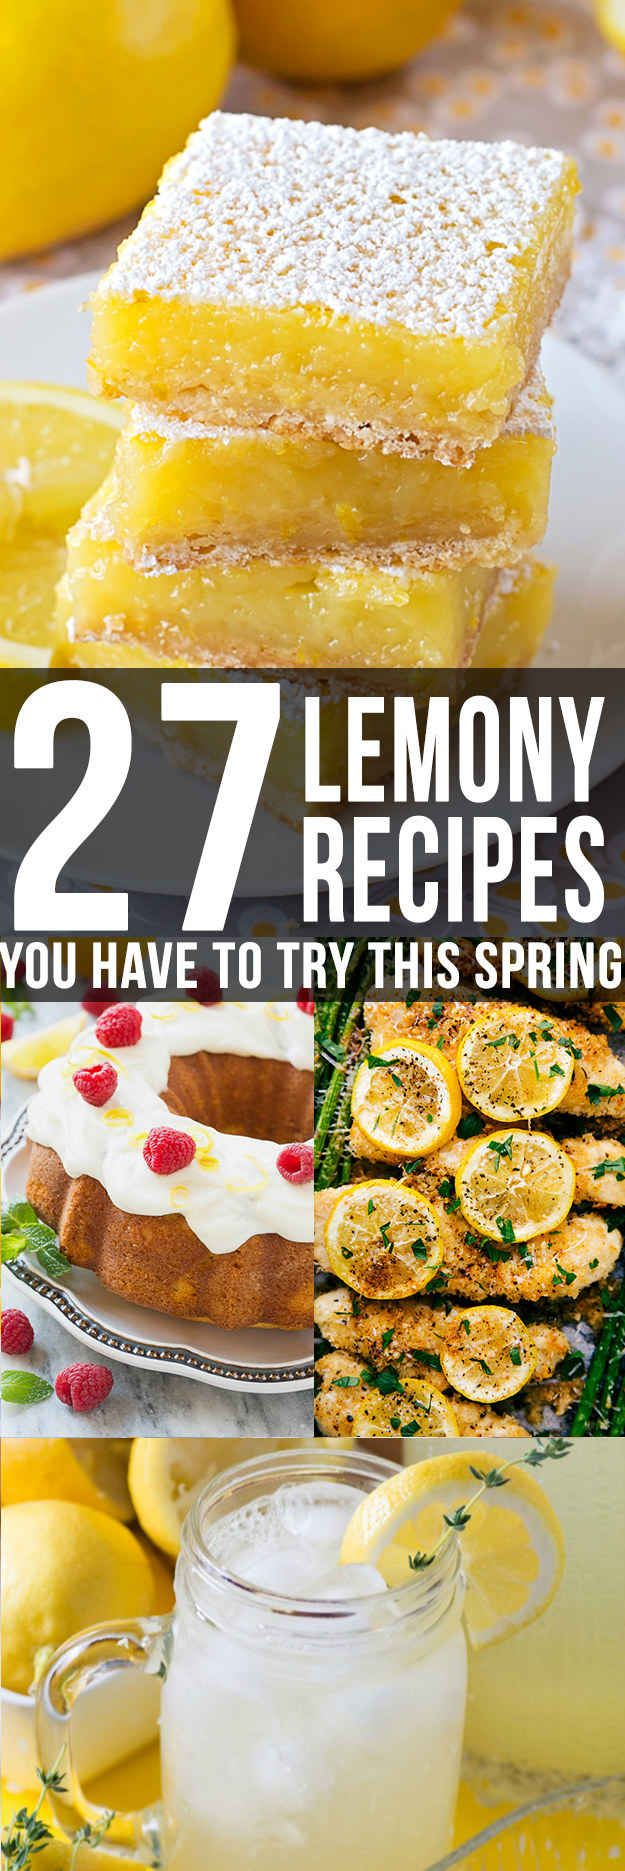 27 Heavenly Things To Make When Life Gives You Lemons